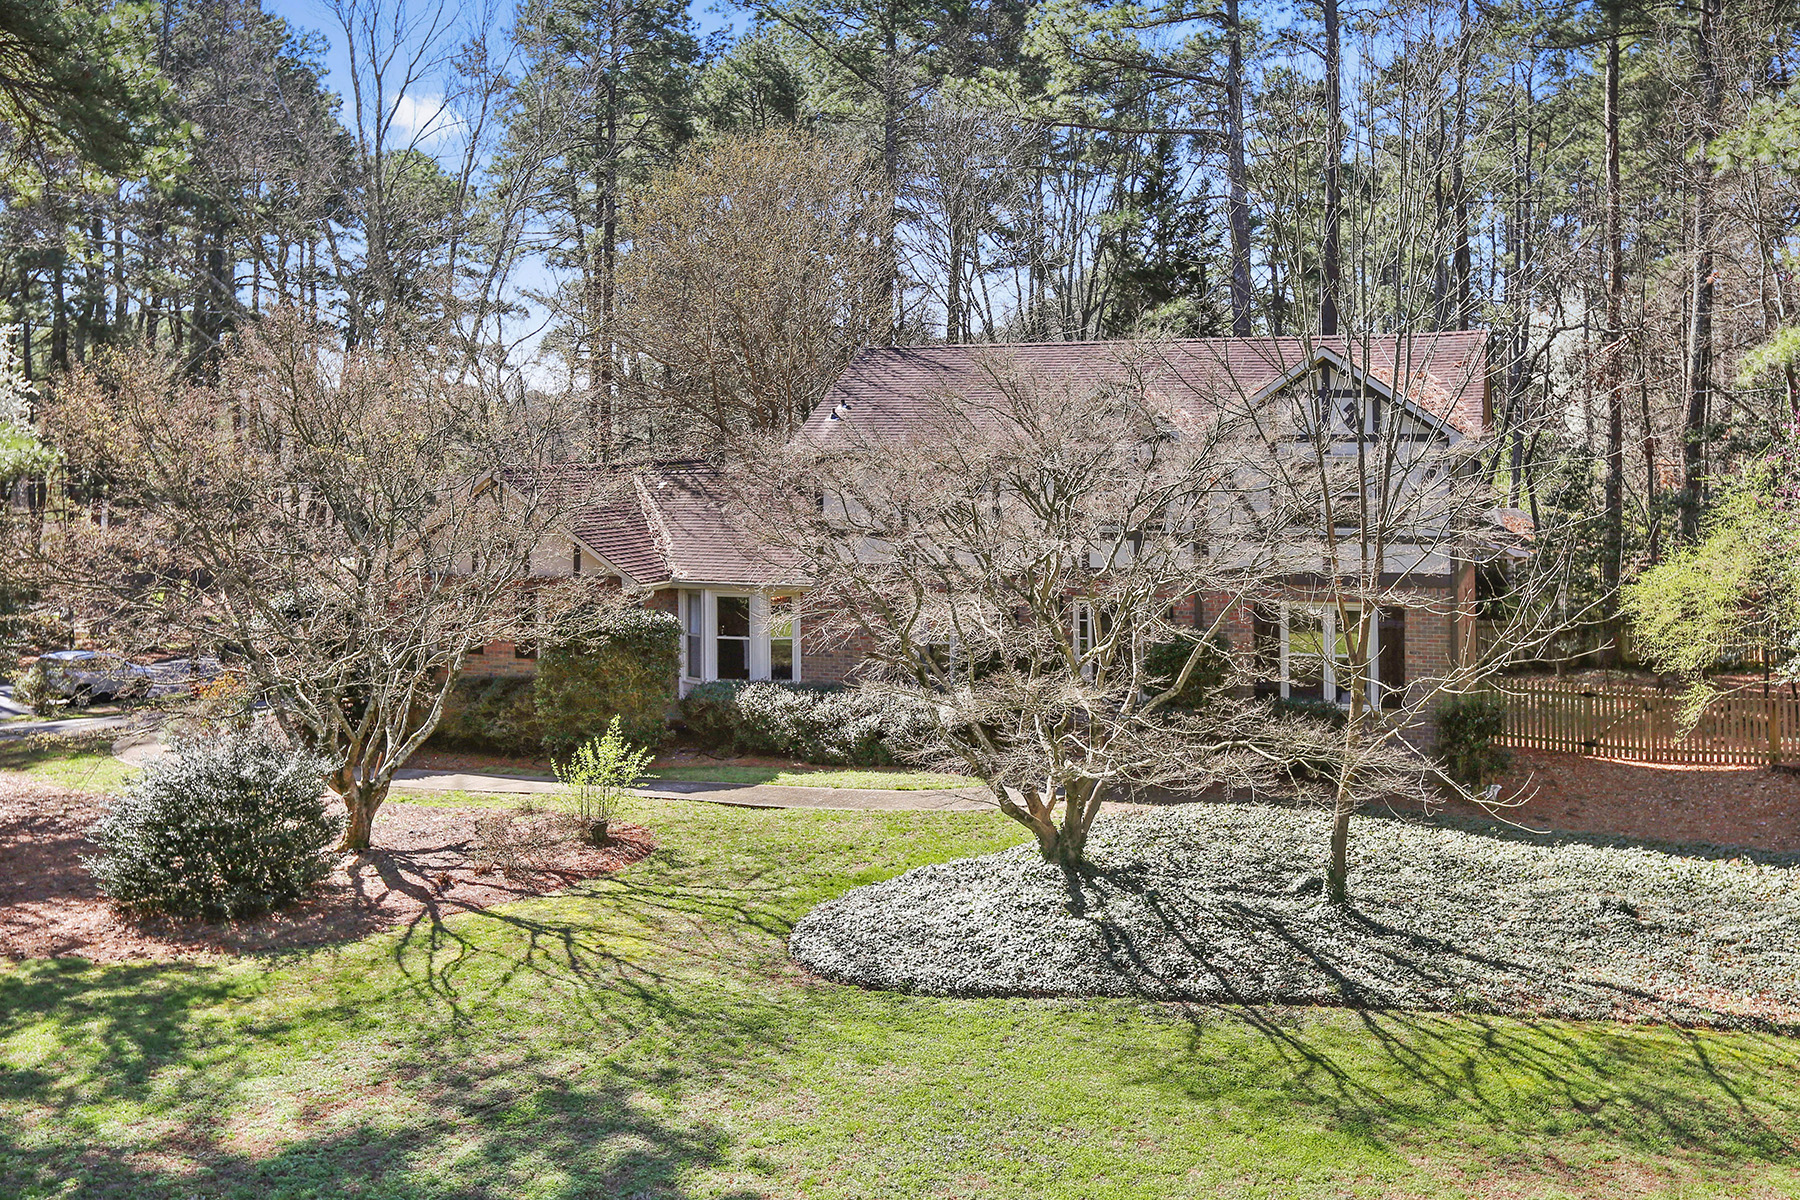 Single Family Home for Sale at Fabulous Renovation by Current Designer Owner 365 Houze Way Roswell, Georgia 30076 United States